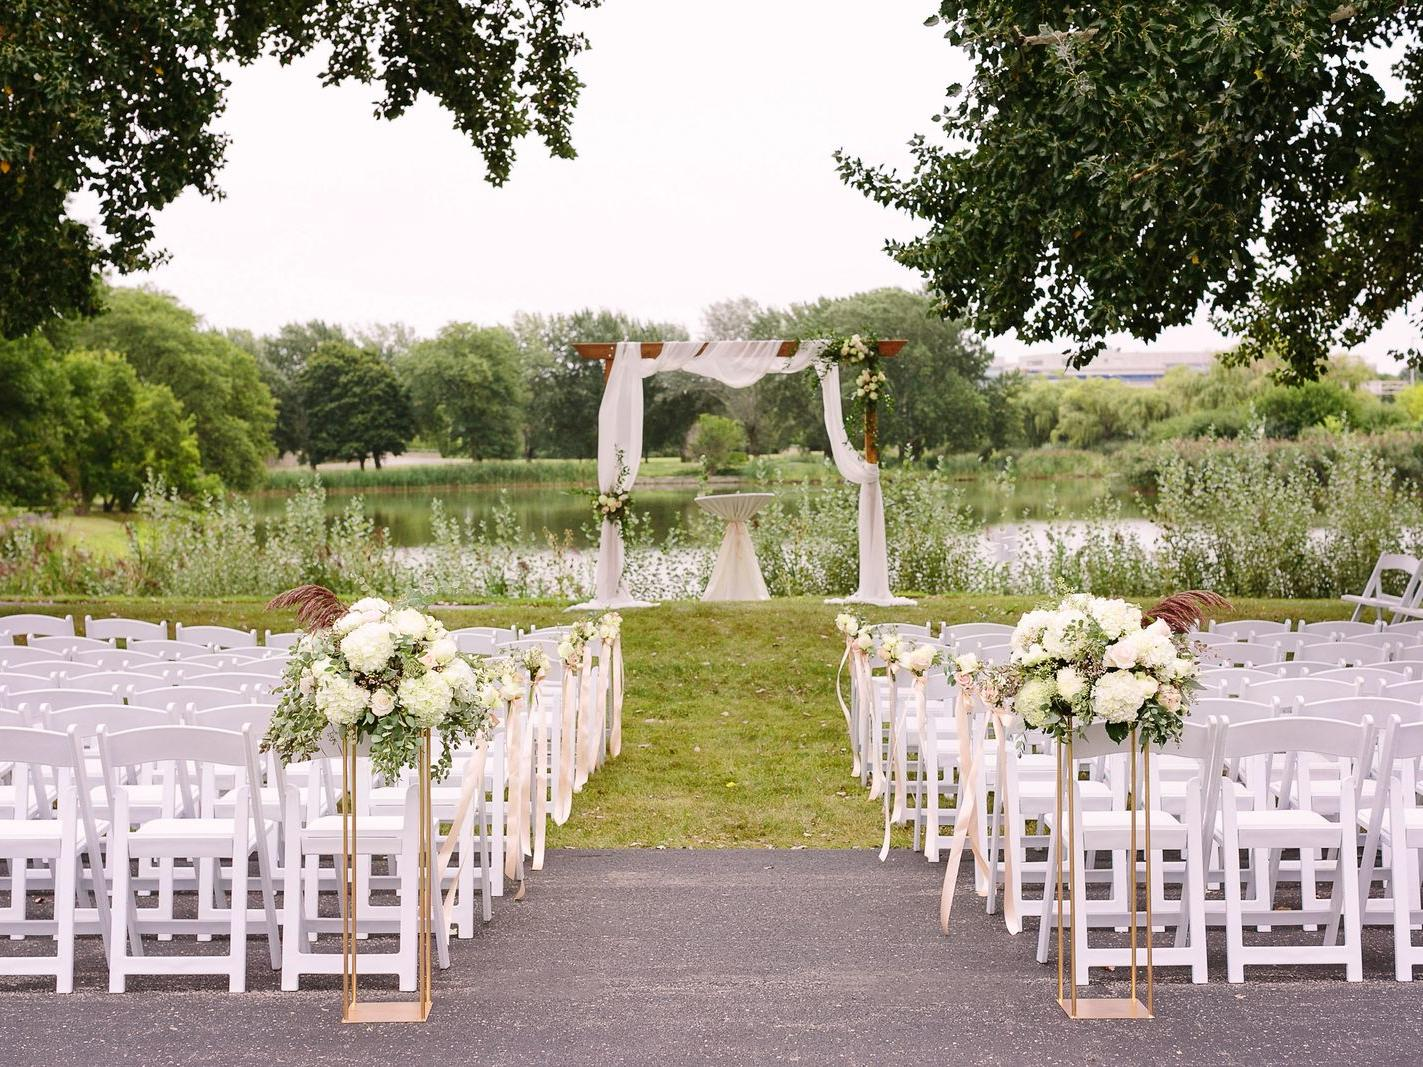 chairs for a wedding ceremony outside